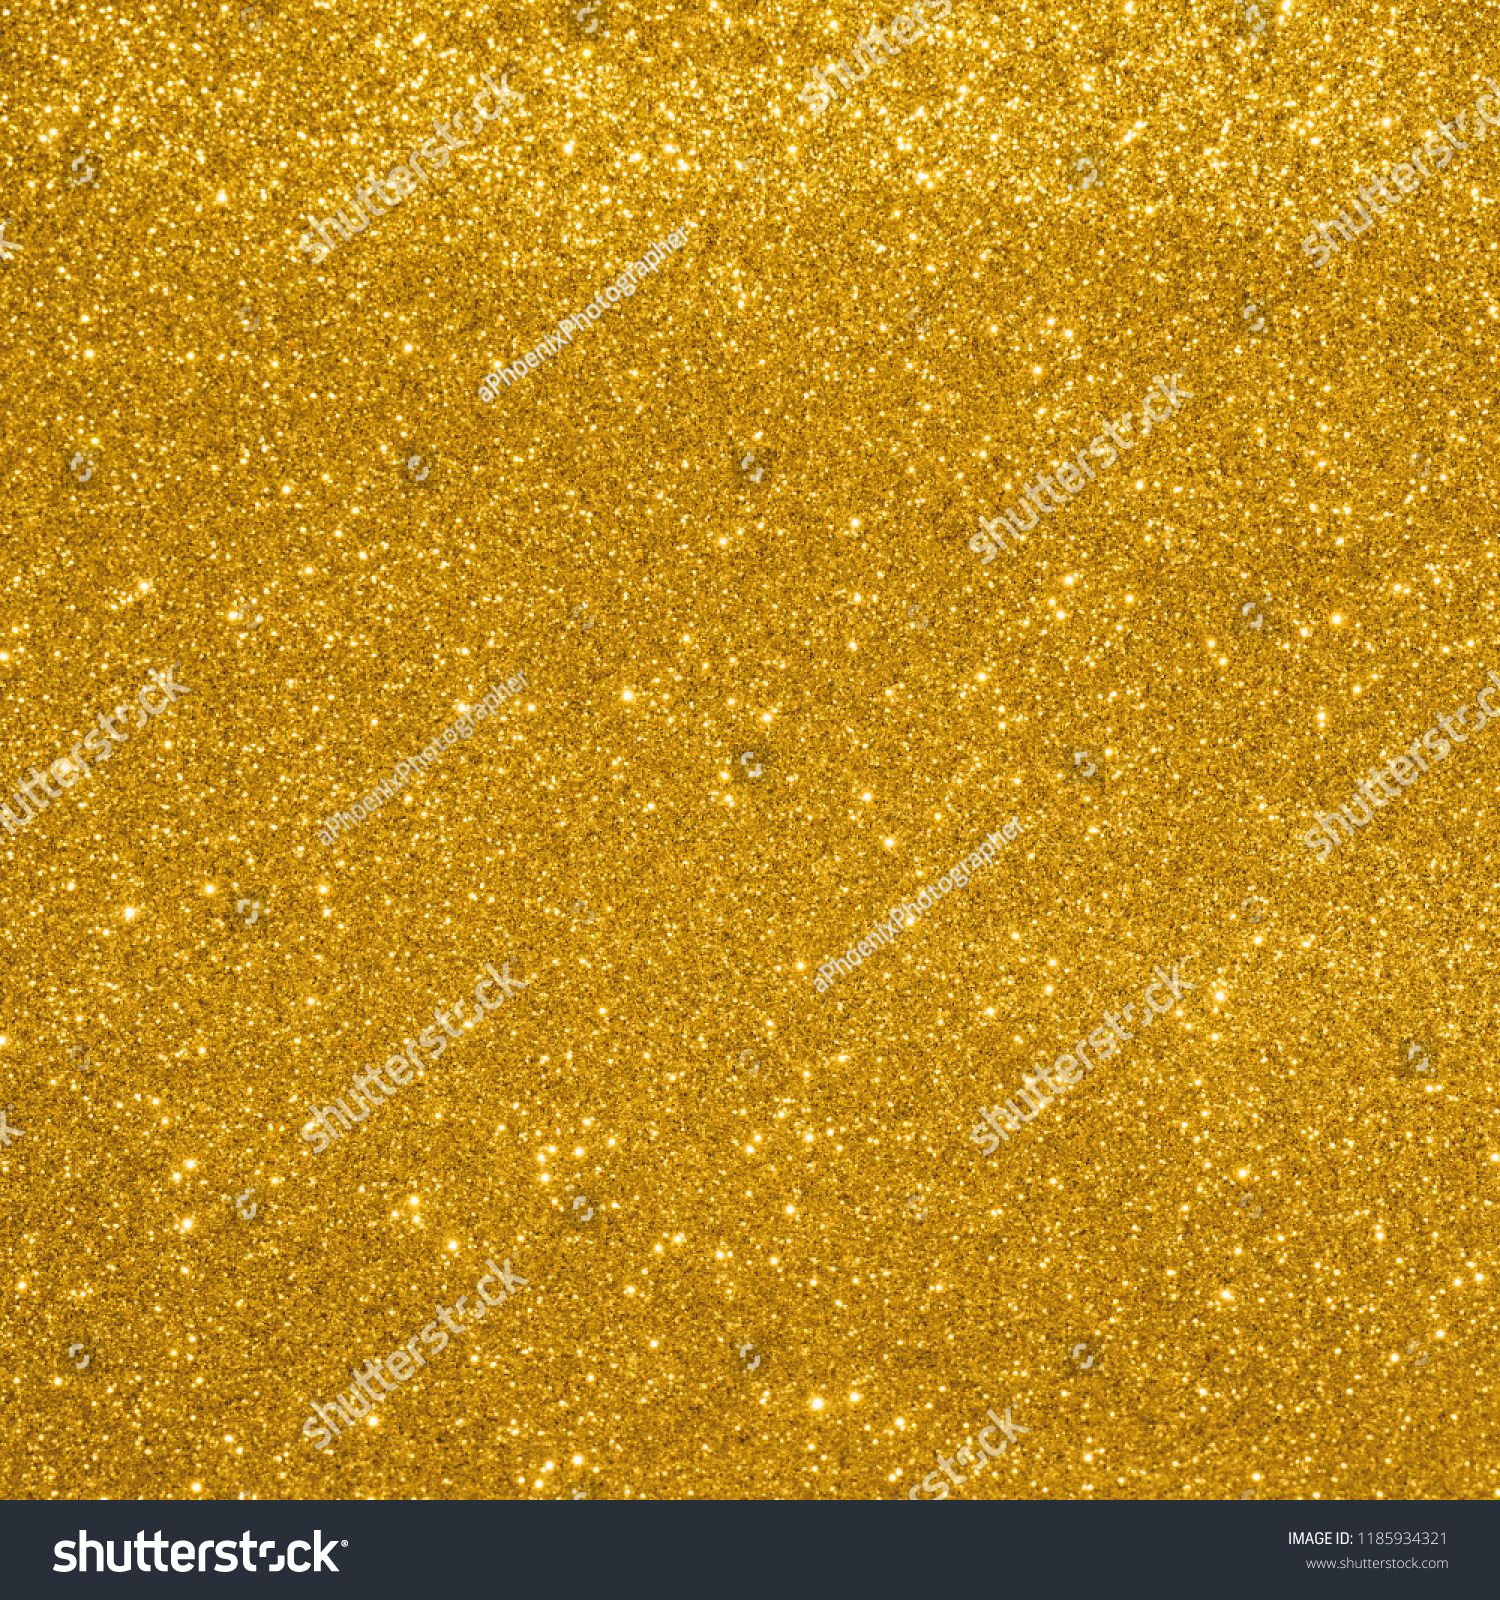 Gold glitter background texture. glitter#Gold#texture#background #goldglitterbackground